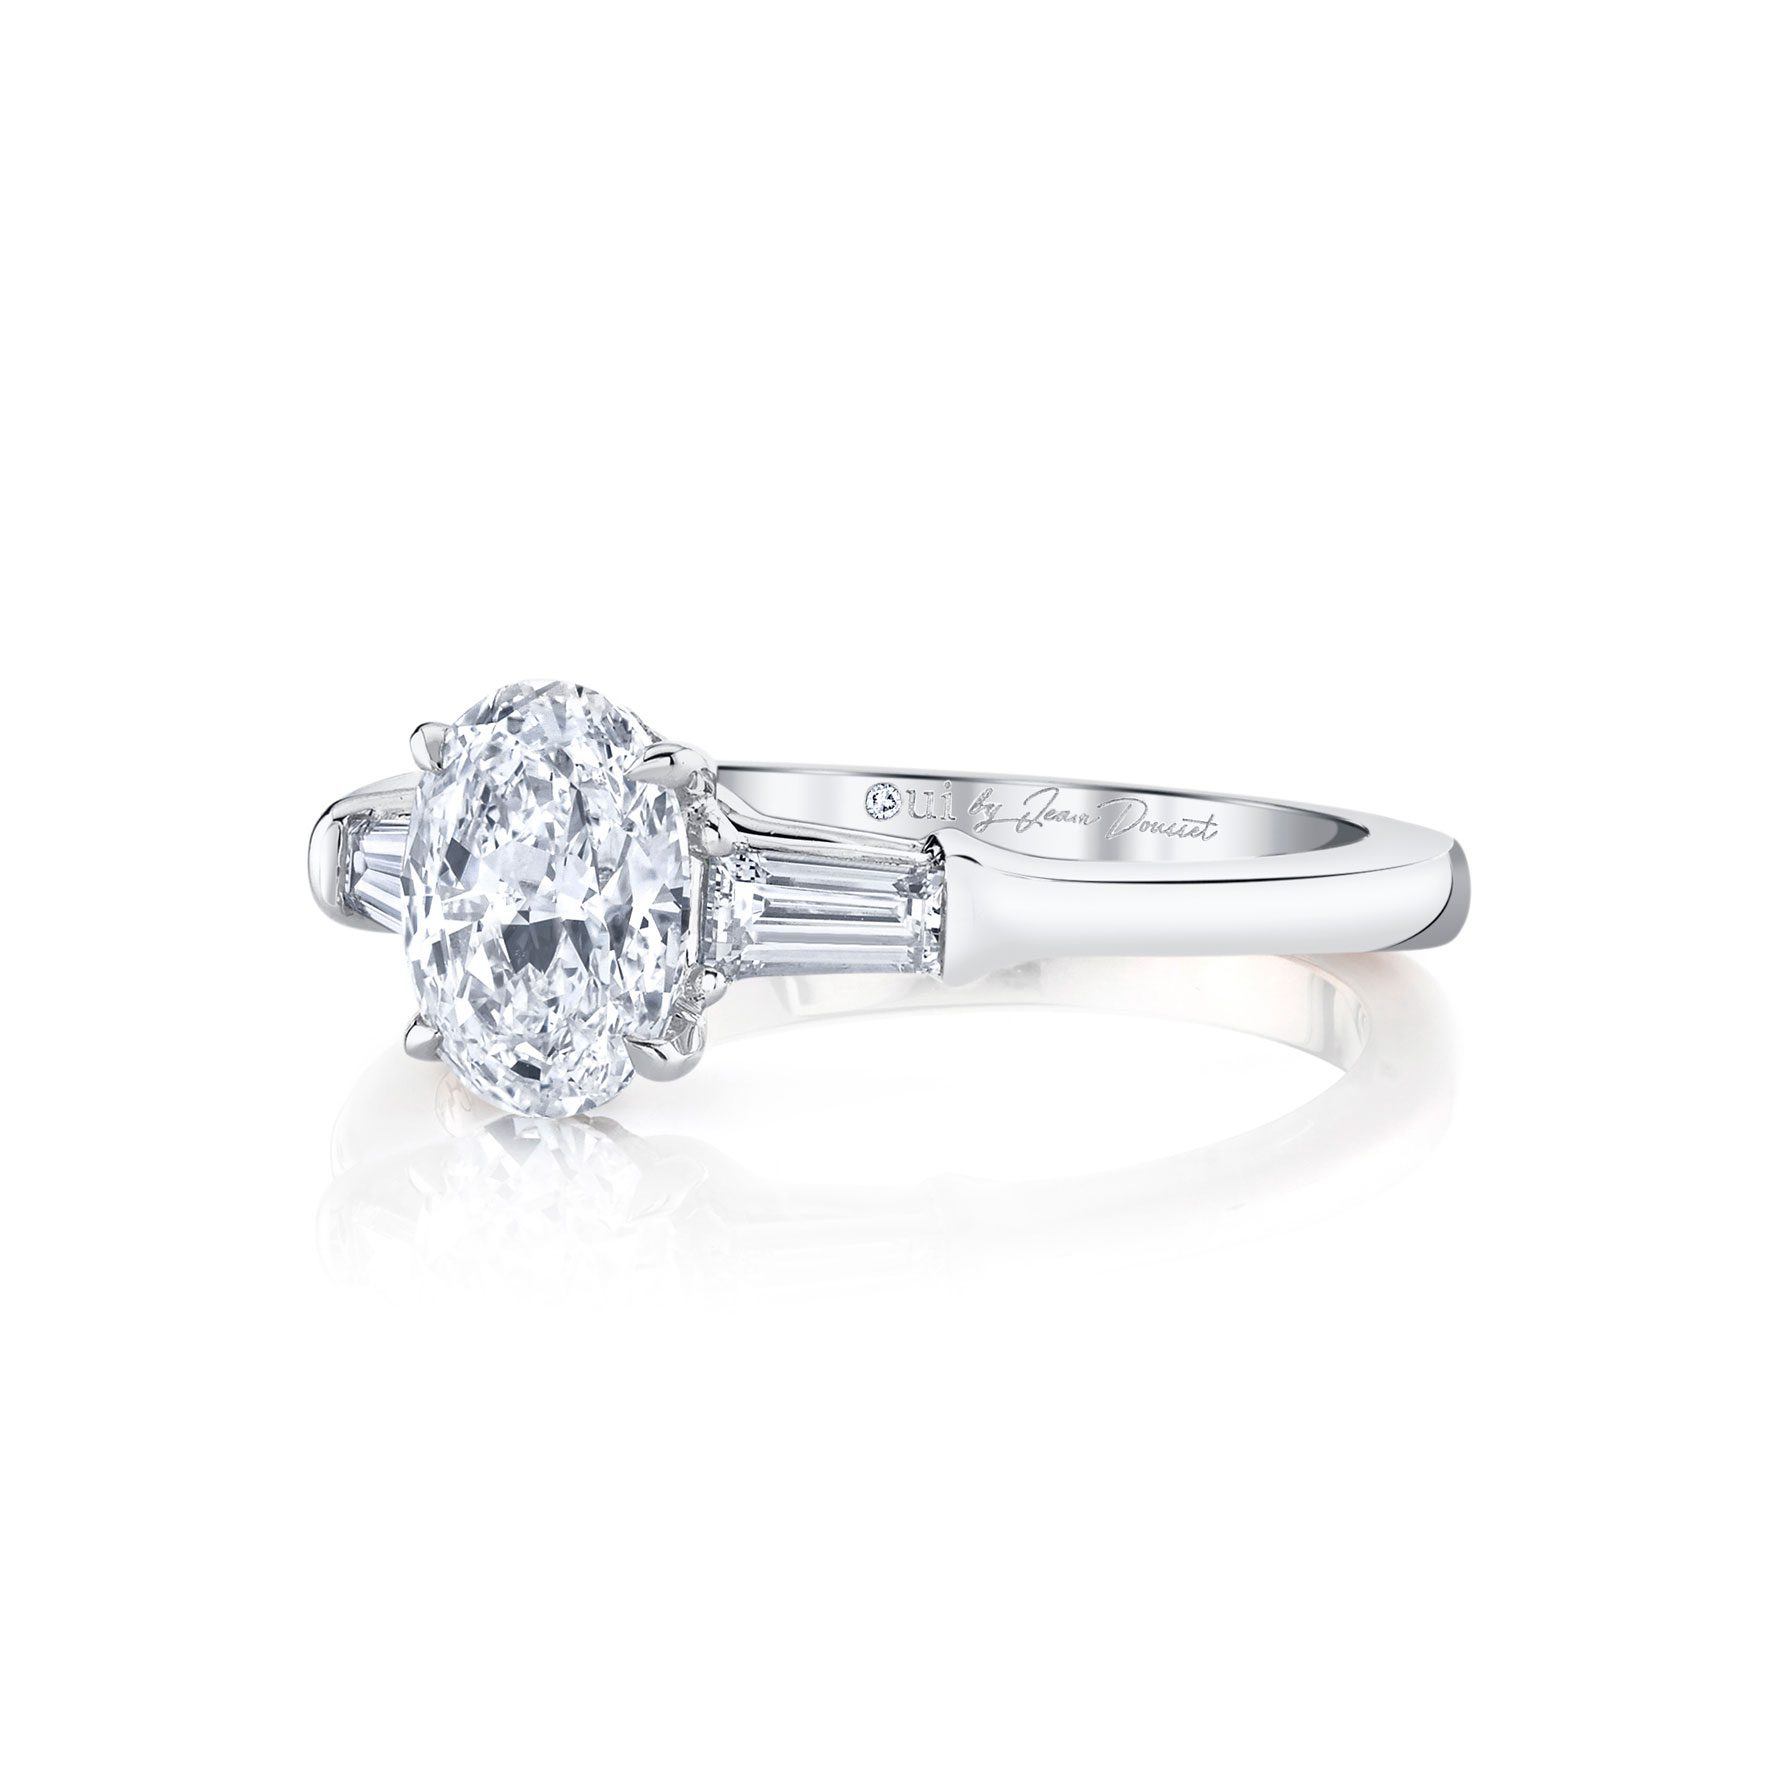 Claire Oval Three Stone Engagement Ring with tapered baguette diamond side stones in 18k White Gold Side View by Oui by Jean Dousset